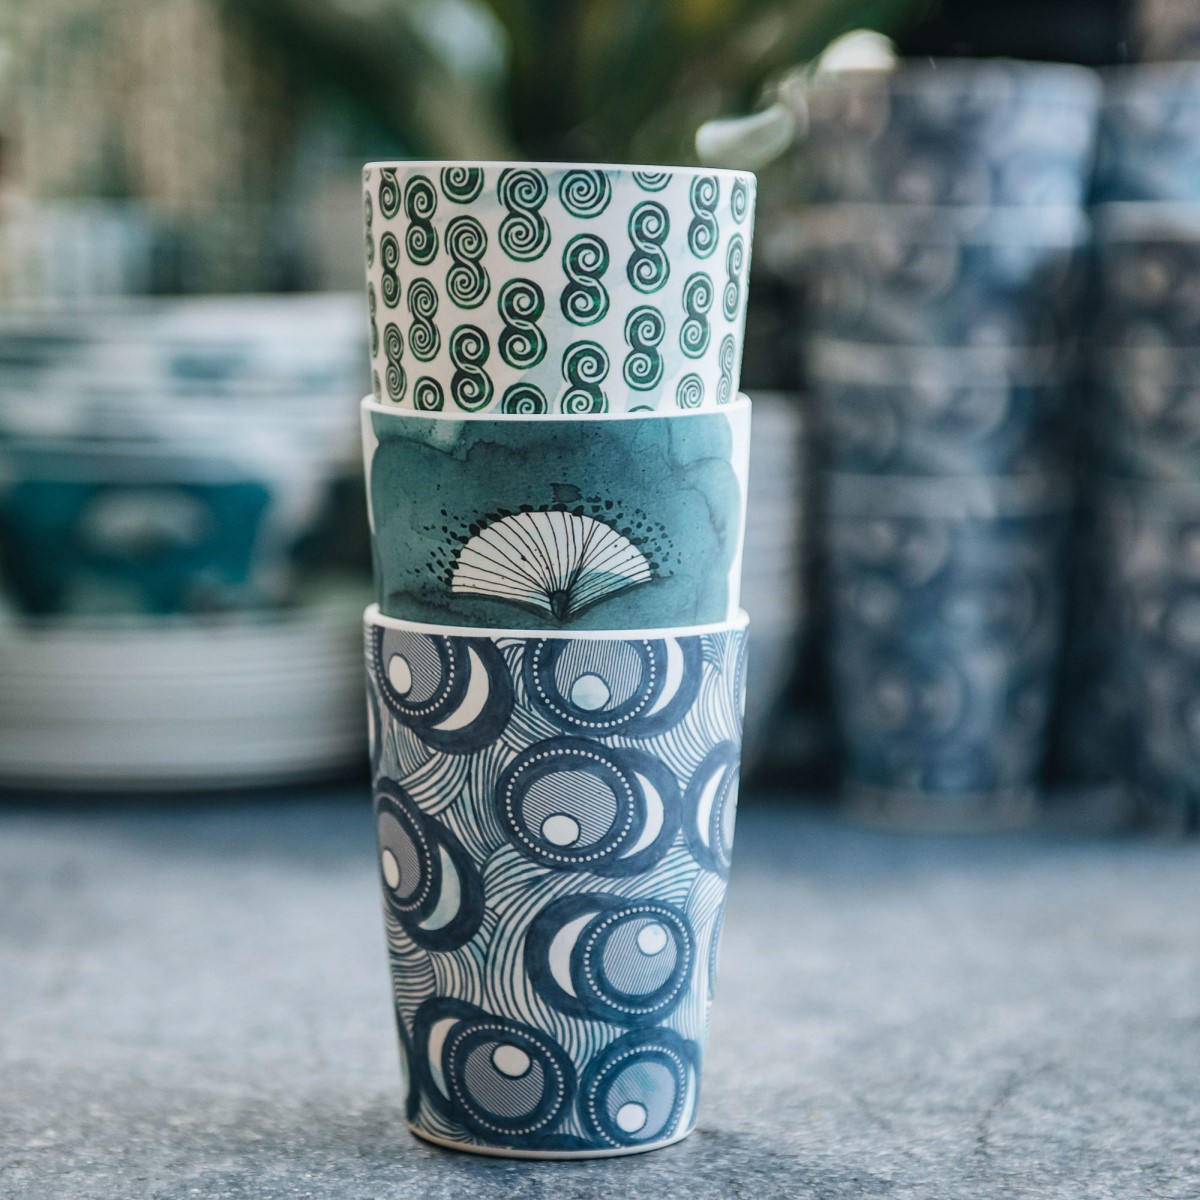 Bamboo Tumblers from Burford Garden Company